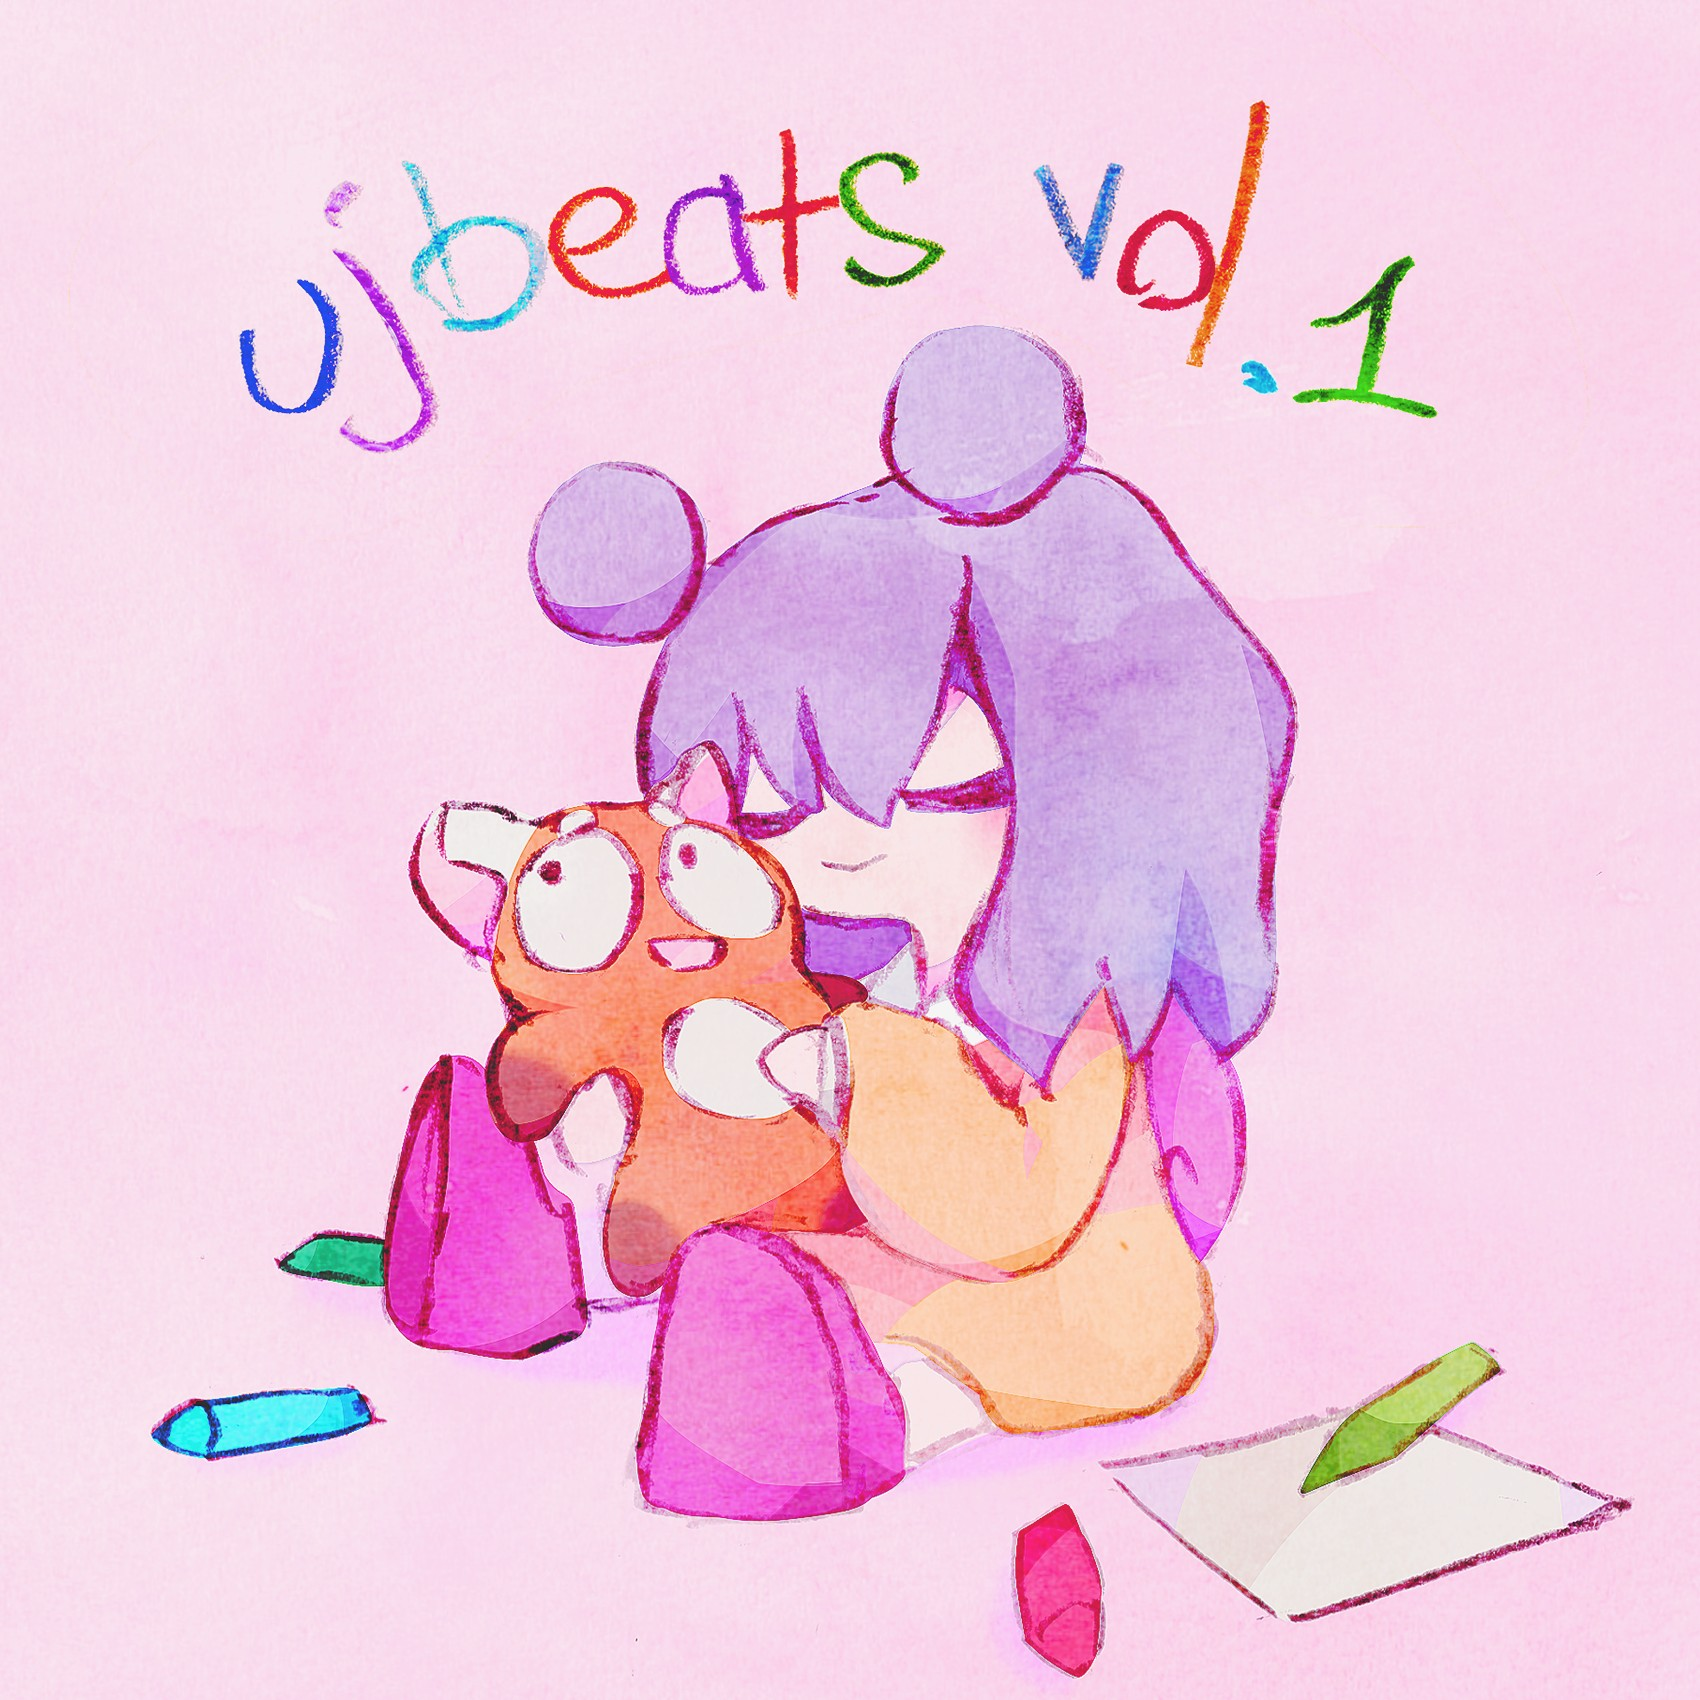 Ujico*/Snail's House – ujbeats vol.1 [FLAC + MP3 320 / WEB] [2020.03.31]